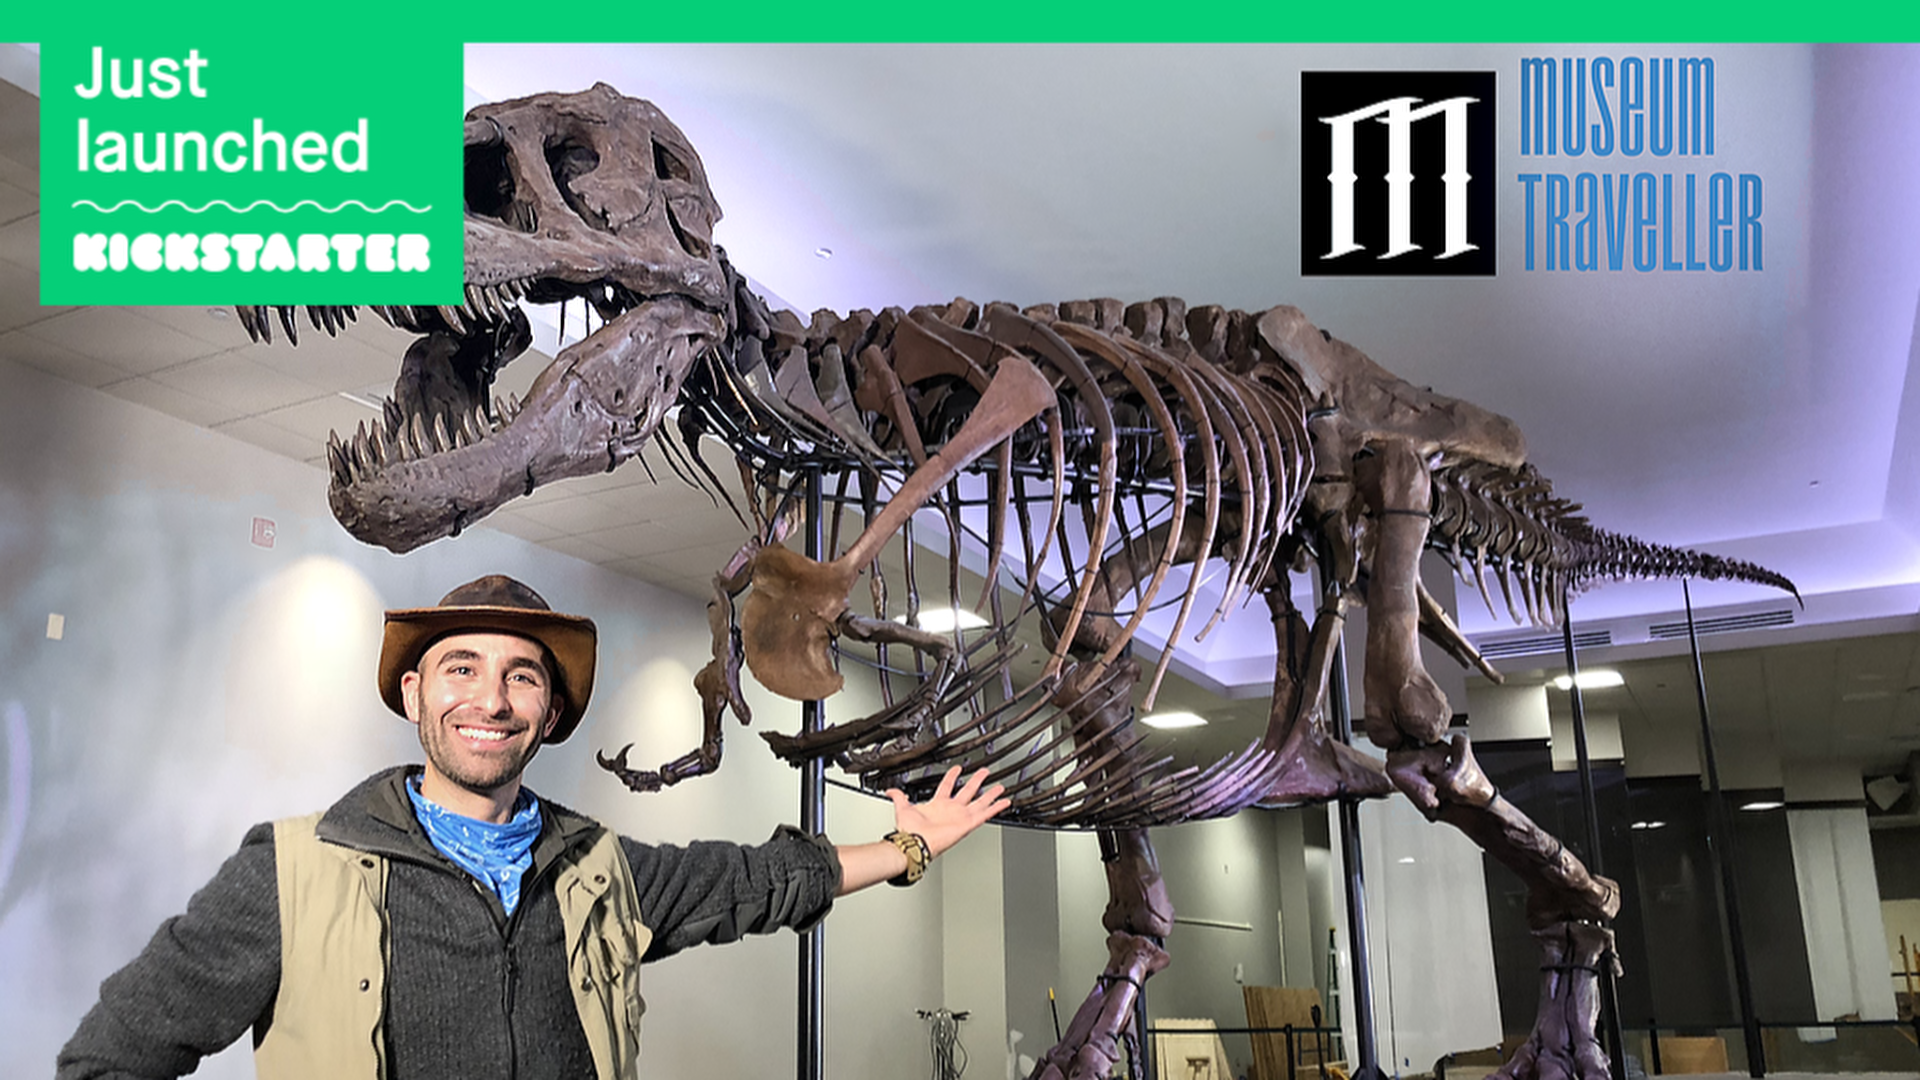 Museum Traveller - Unlimited Access to All Museums Around the World